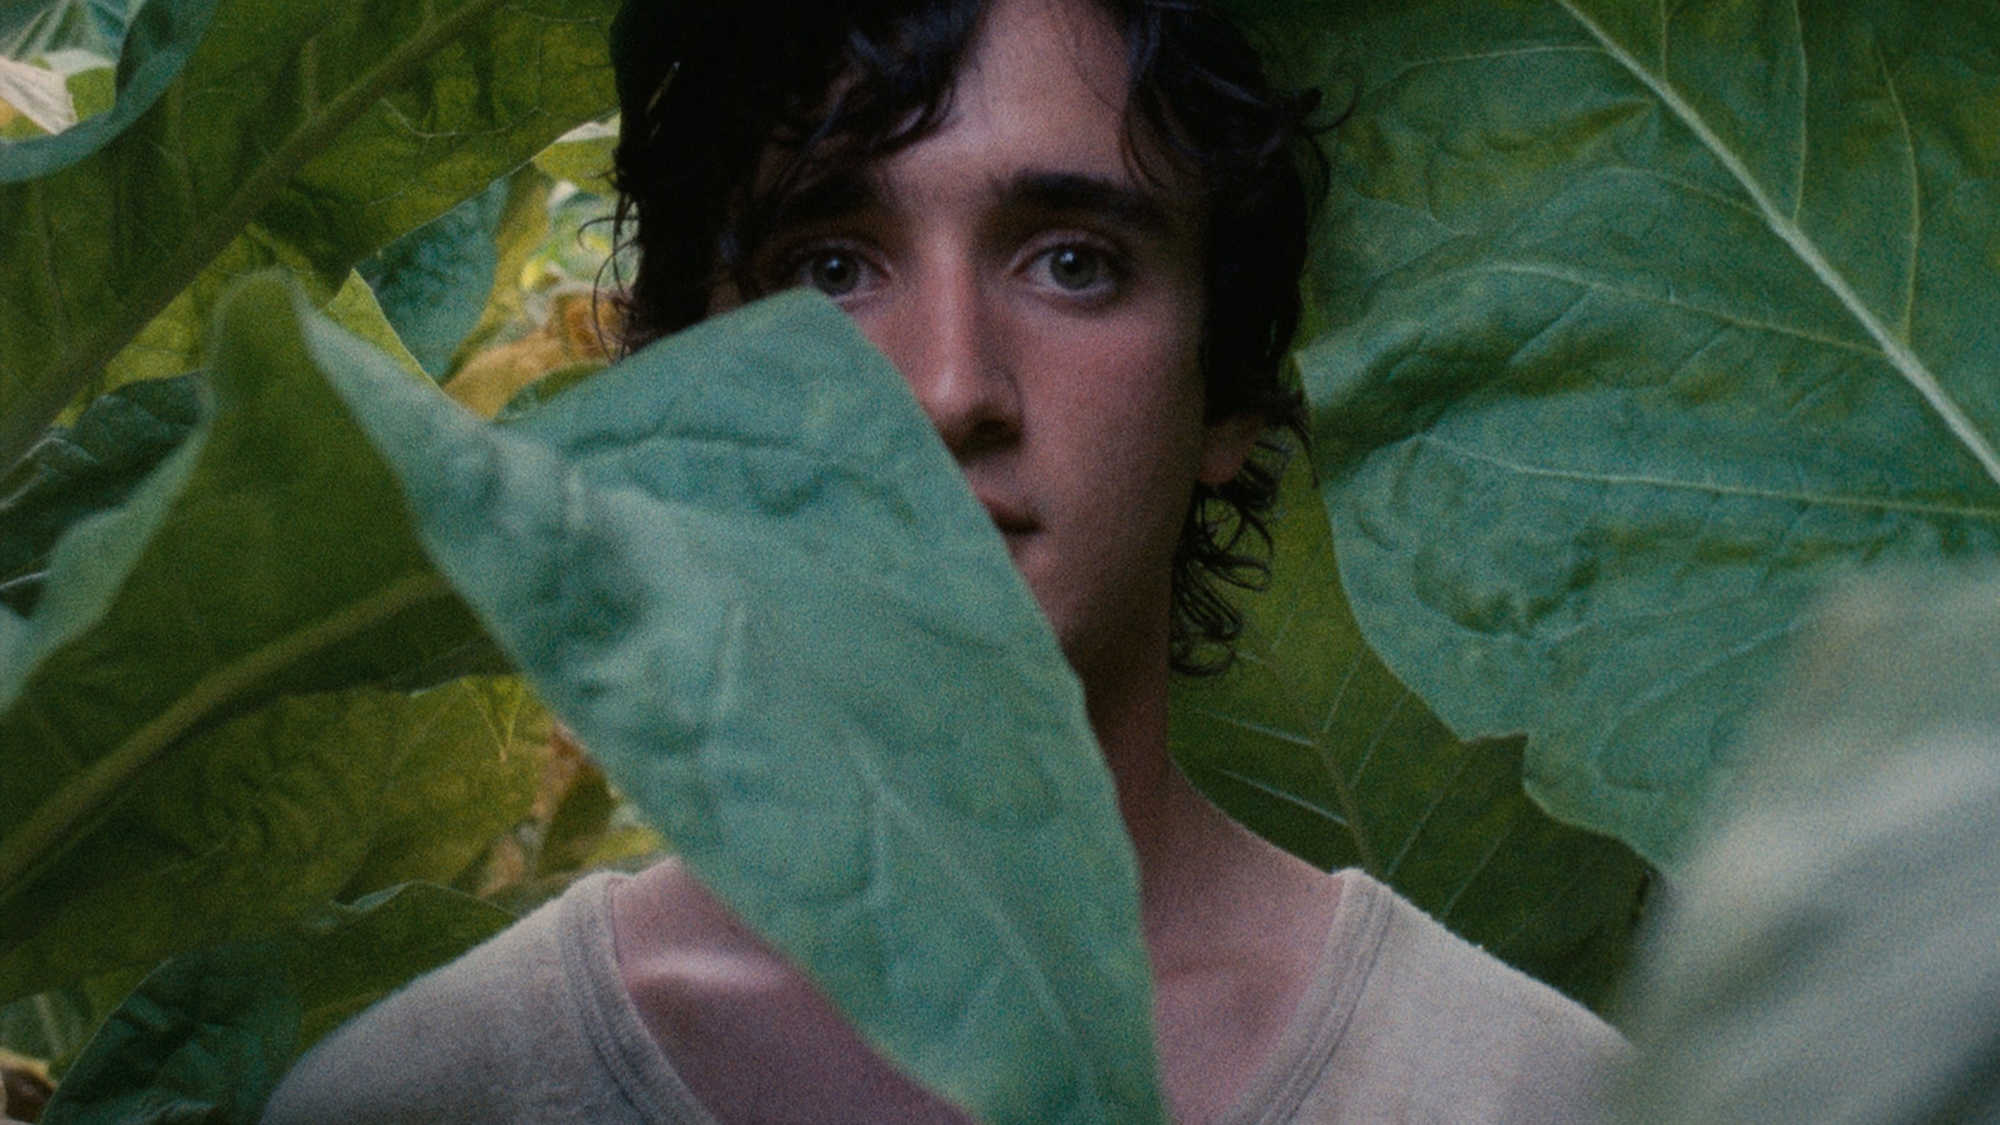 9. Happy as Lazzaro (dir. Alice Rohrwacher) - Lazzaro, a good-hearted young peasant, and Tancredi, a young nobleman cursed by his imagination, form a life-altering bond when Tancredi asks Lazzaro to help him orchestrate his own kidnapping.